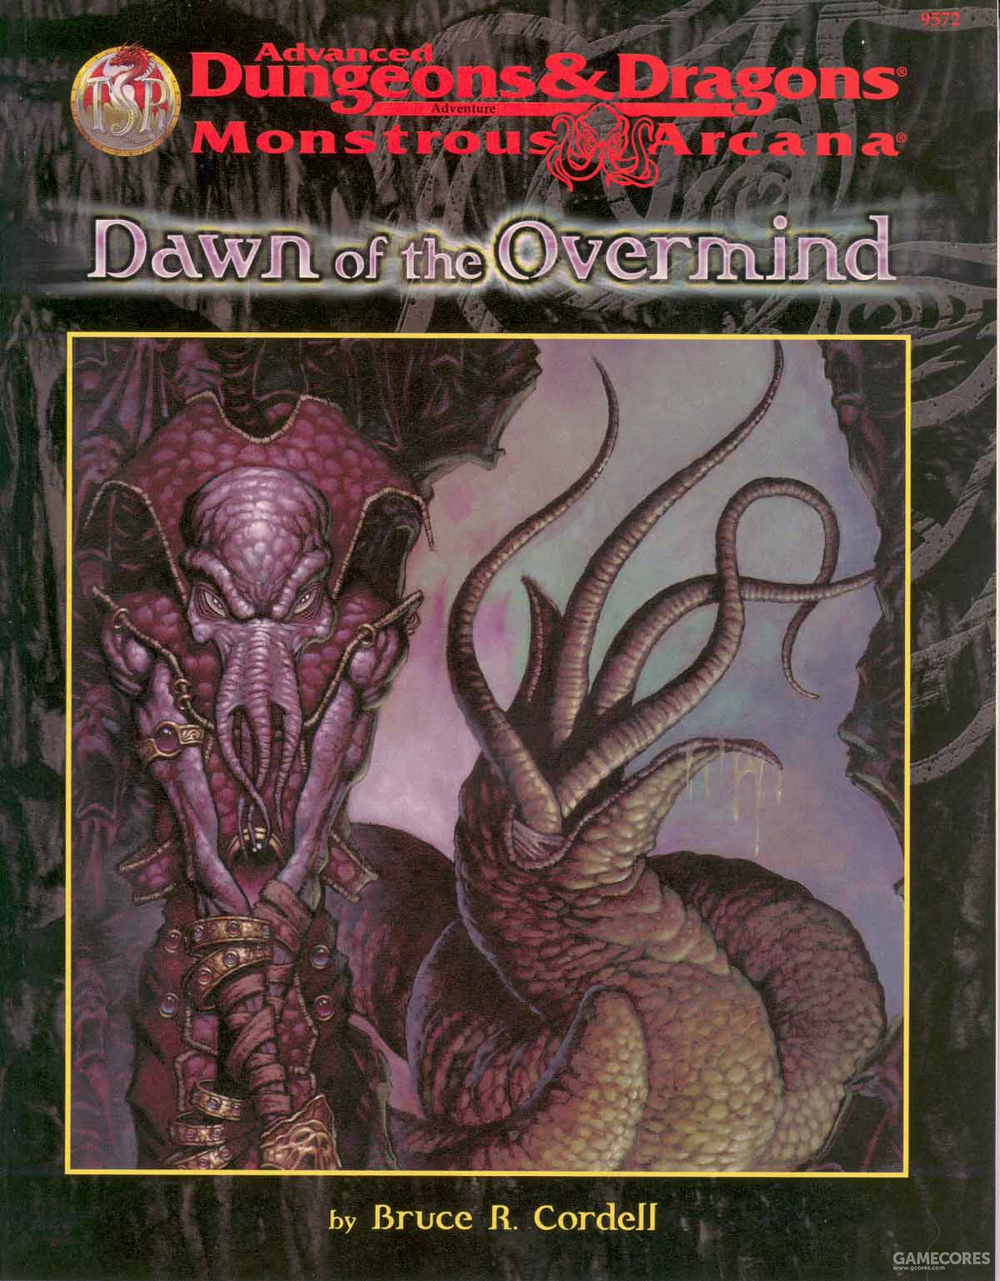 《主宰黎明(Dawn of the Overmind)》。